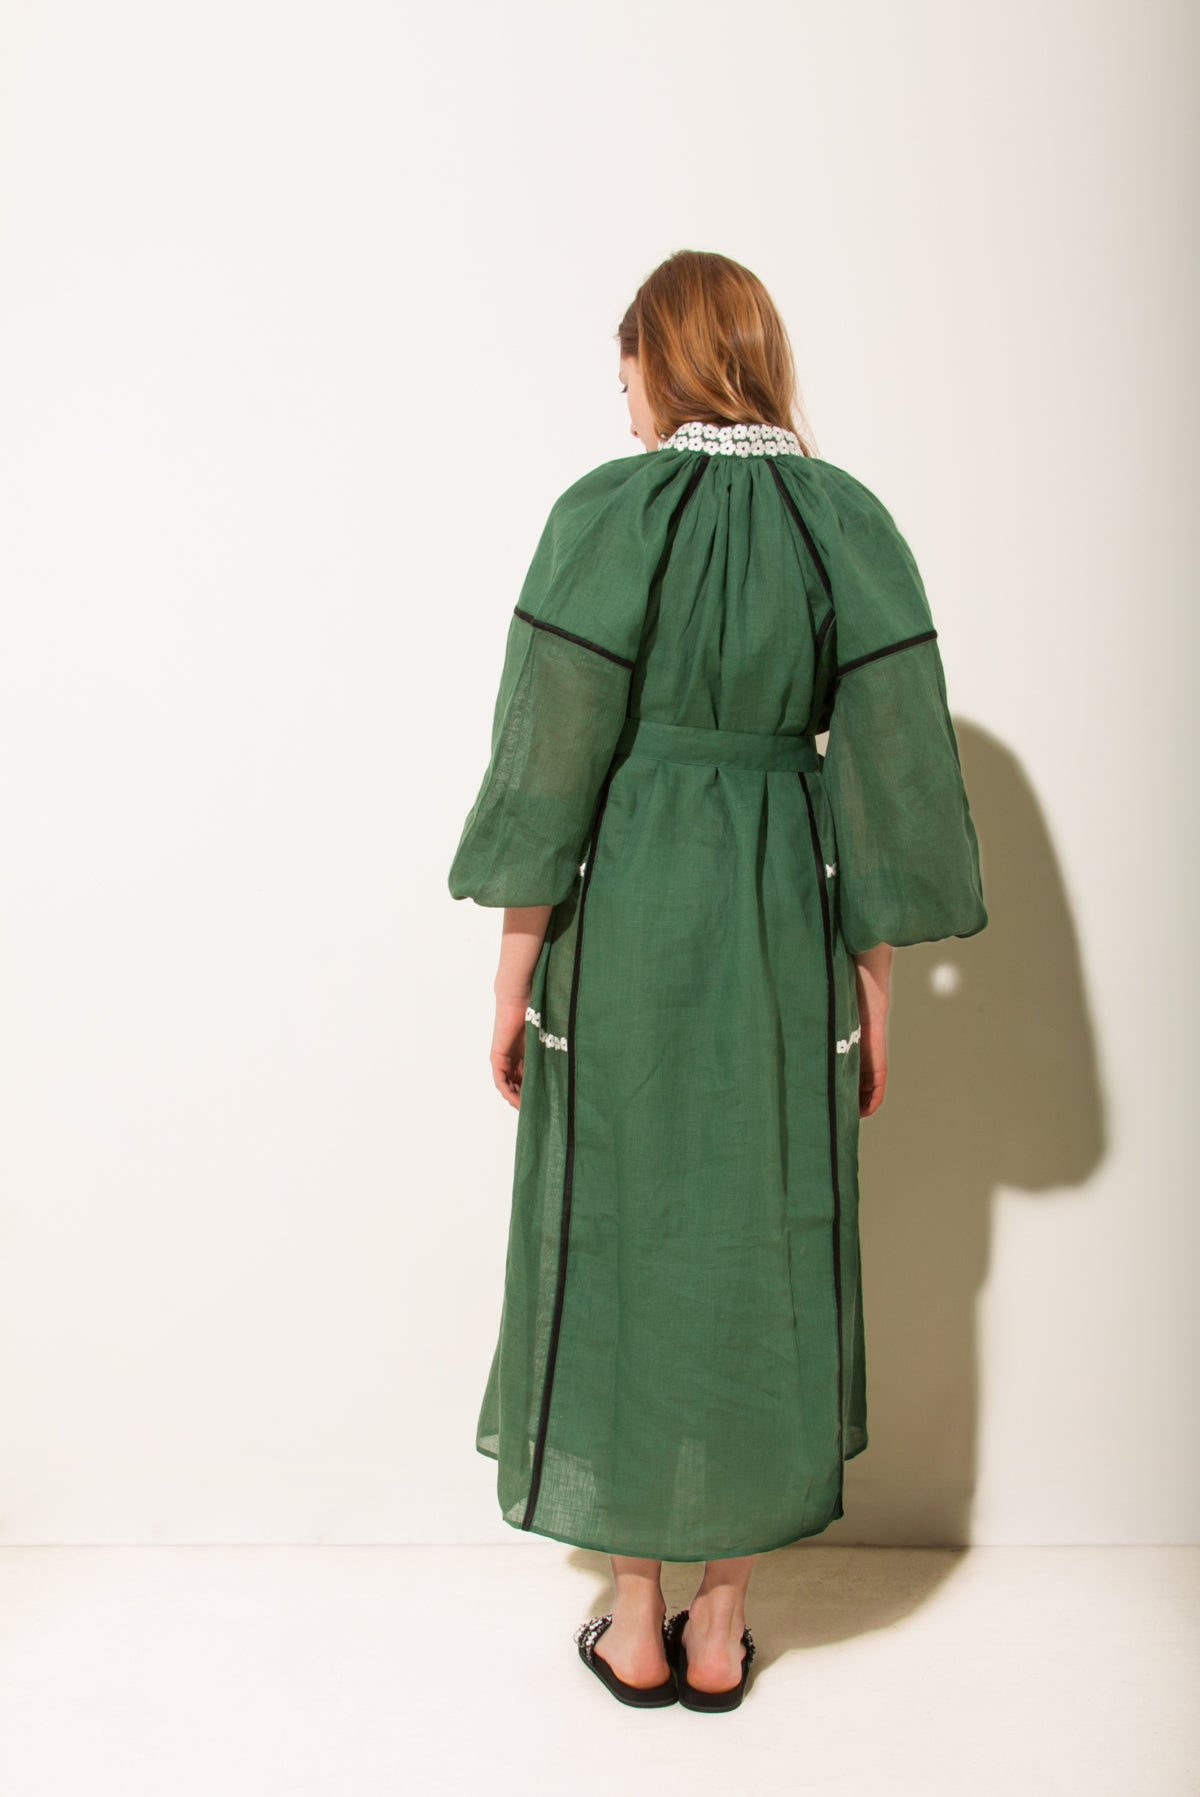 Grace Midi Dress in Green with White